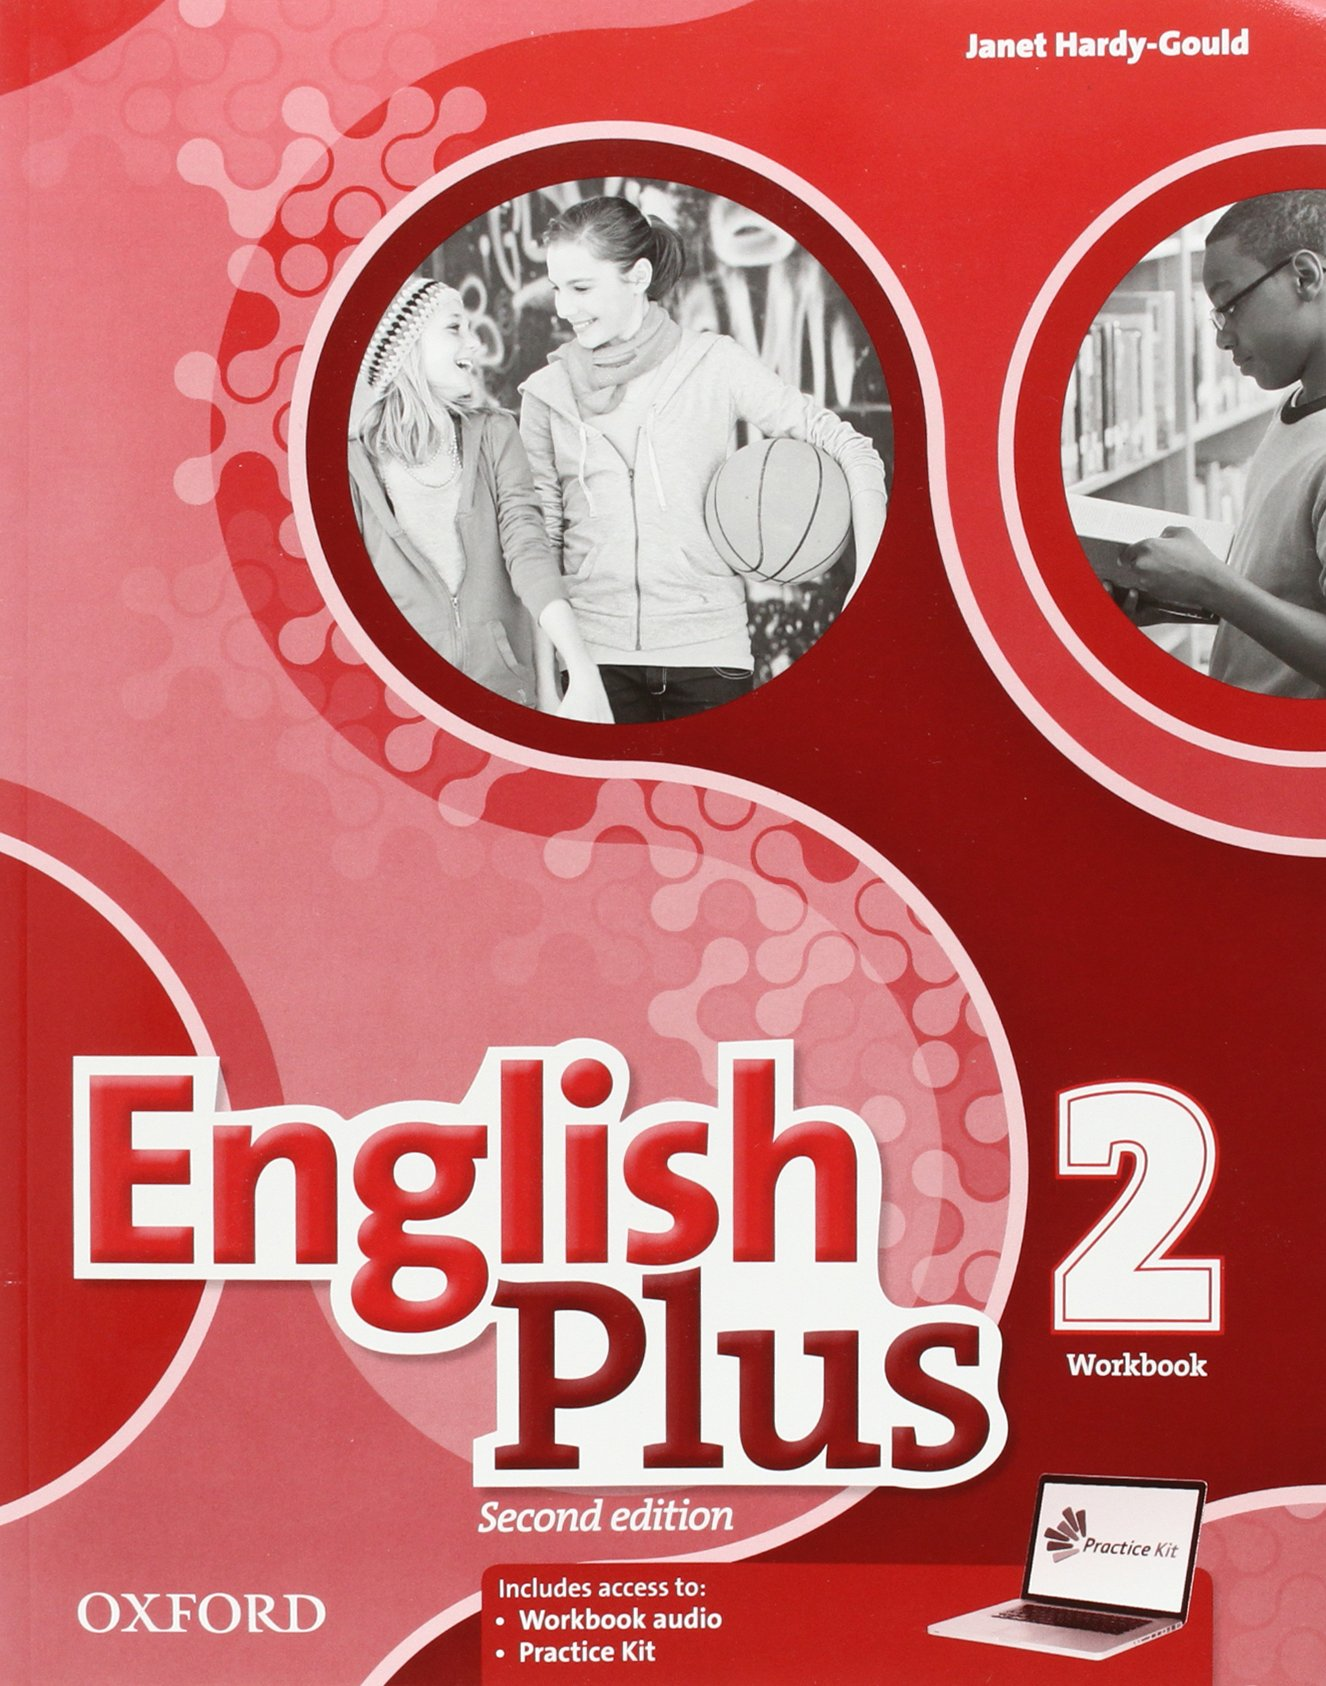 ENGLISH PLUS 2 2ED Workbook with Practice Kit Access